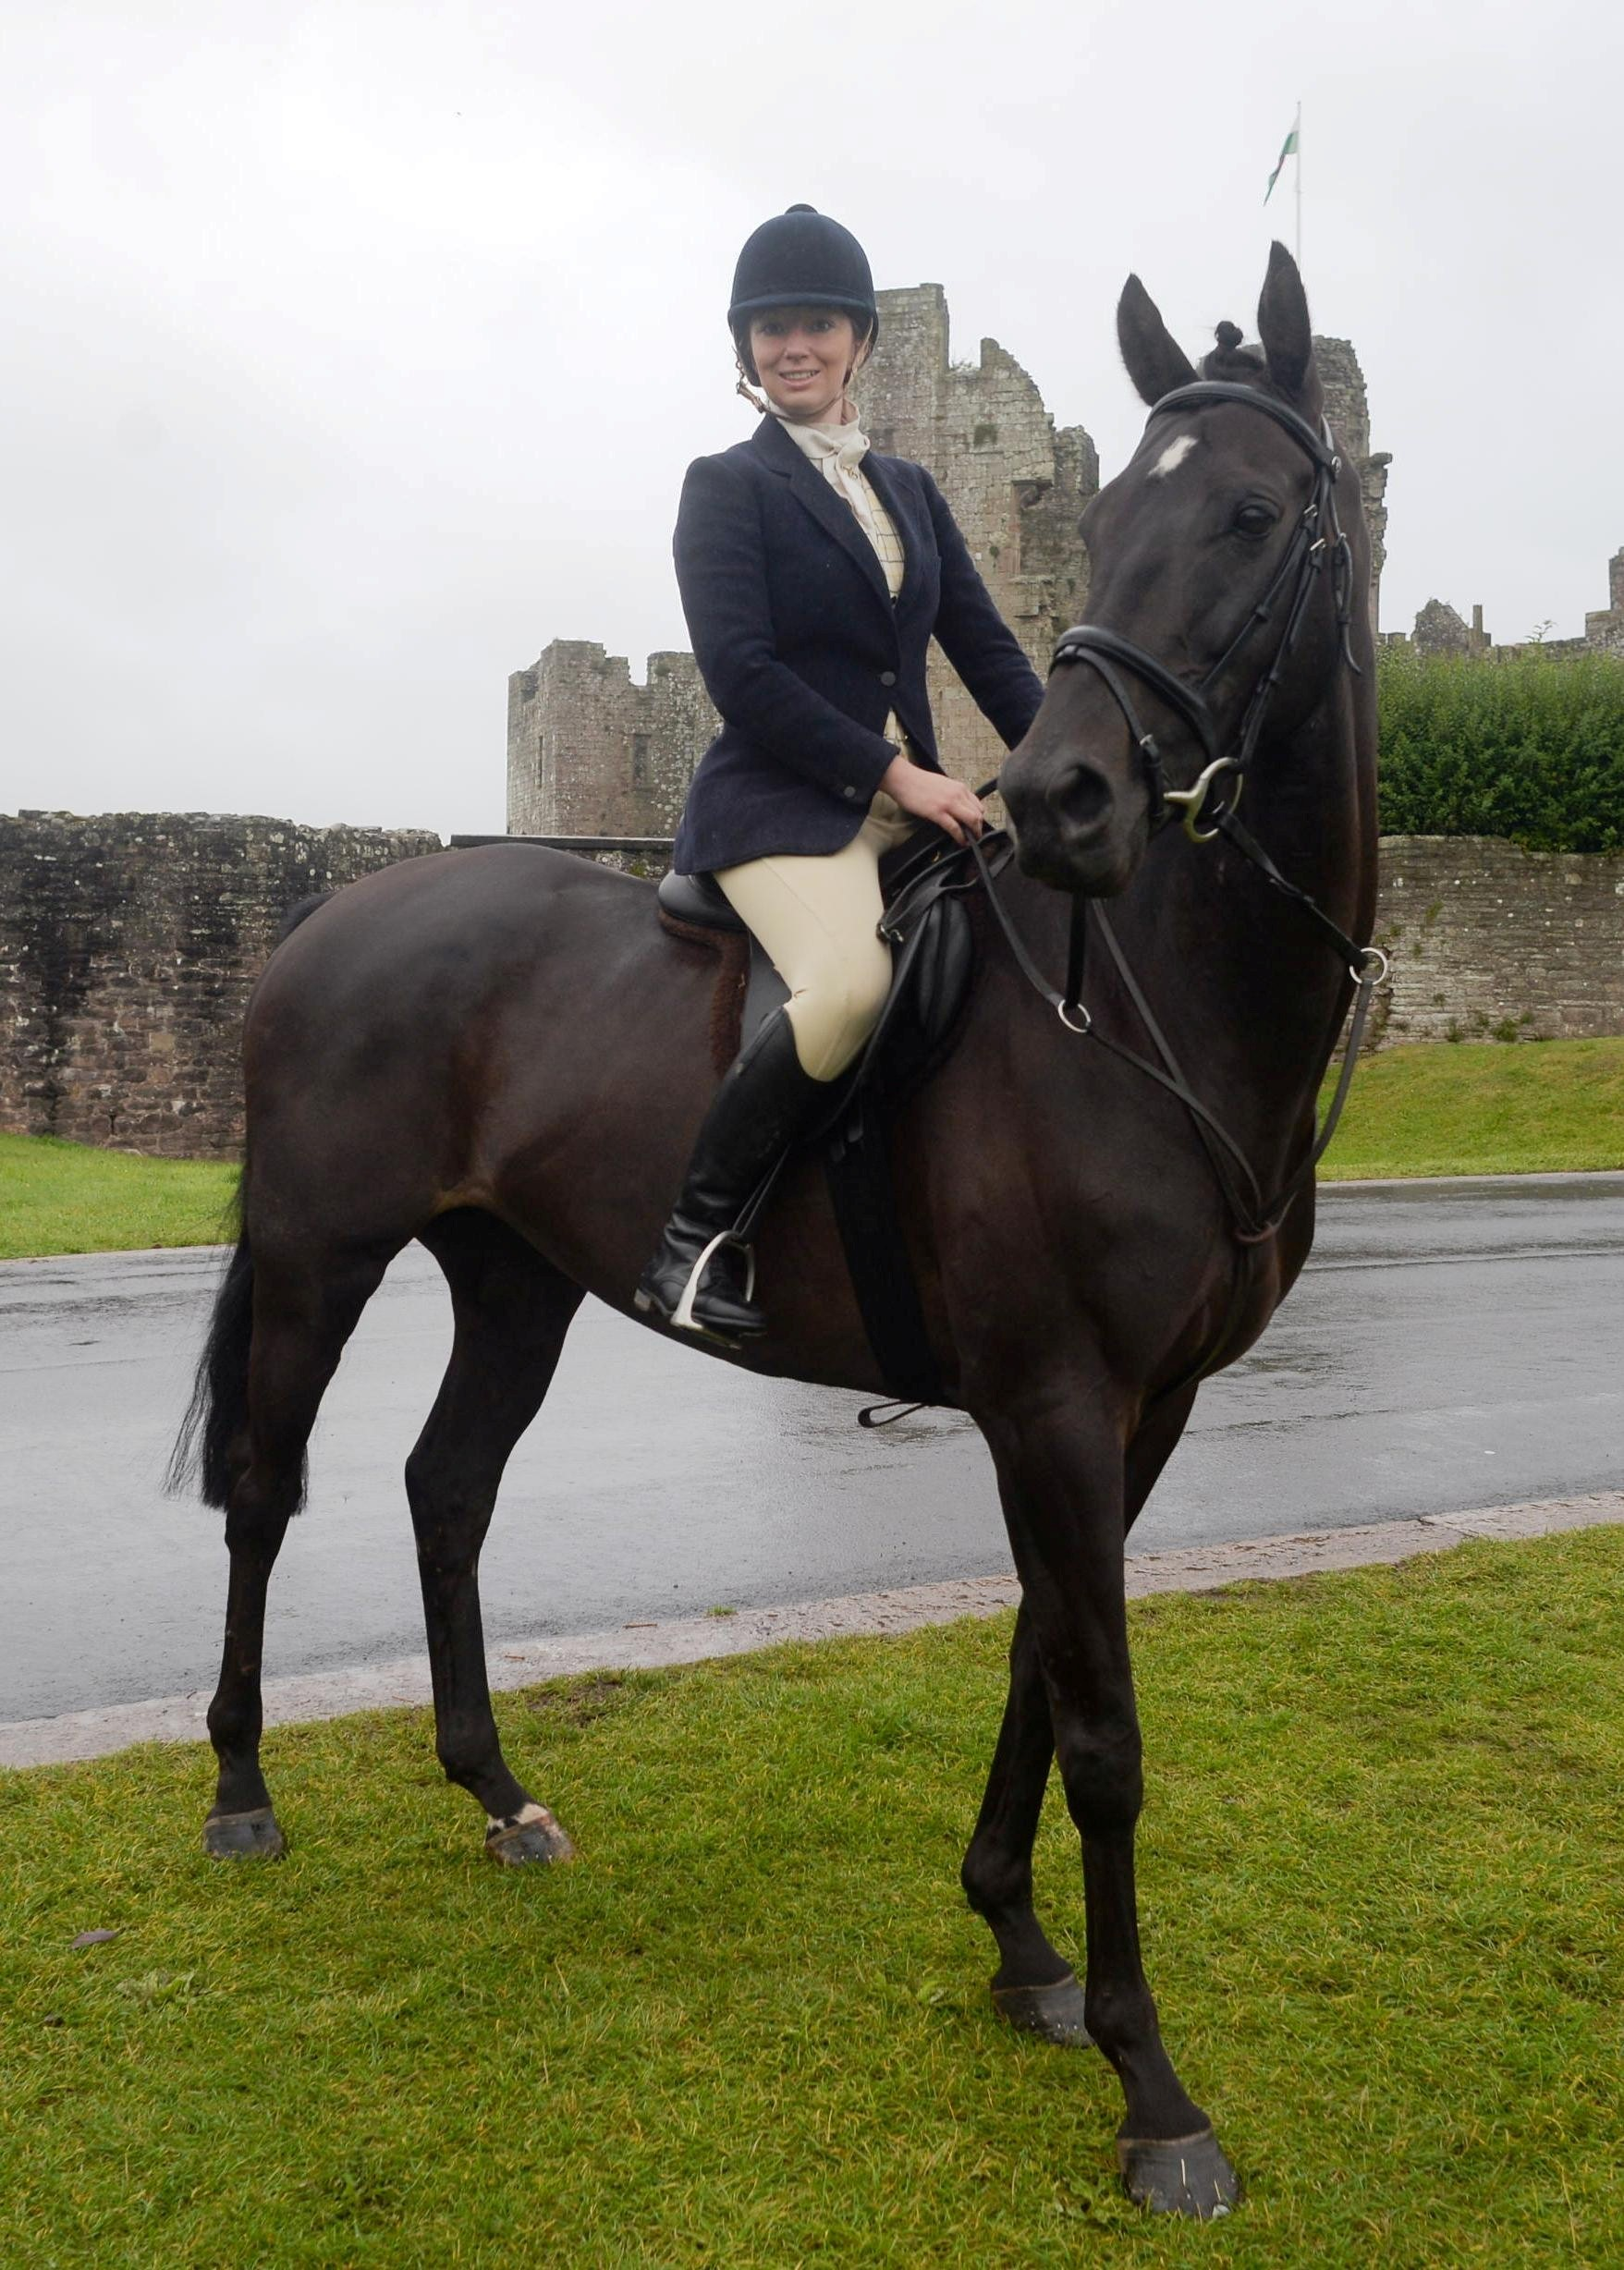 QUEEN OF THE CASTLE  Hannah Barry, who will be doing a 100 mile sponsored ride on her horse, 'Oscar's Law', to raise money for the Royal Welsh Show, she is the Royal Welsh agricultural society's lady ambassador for the event (9656123)